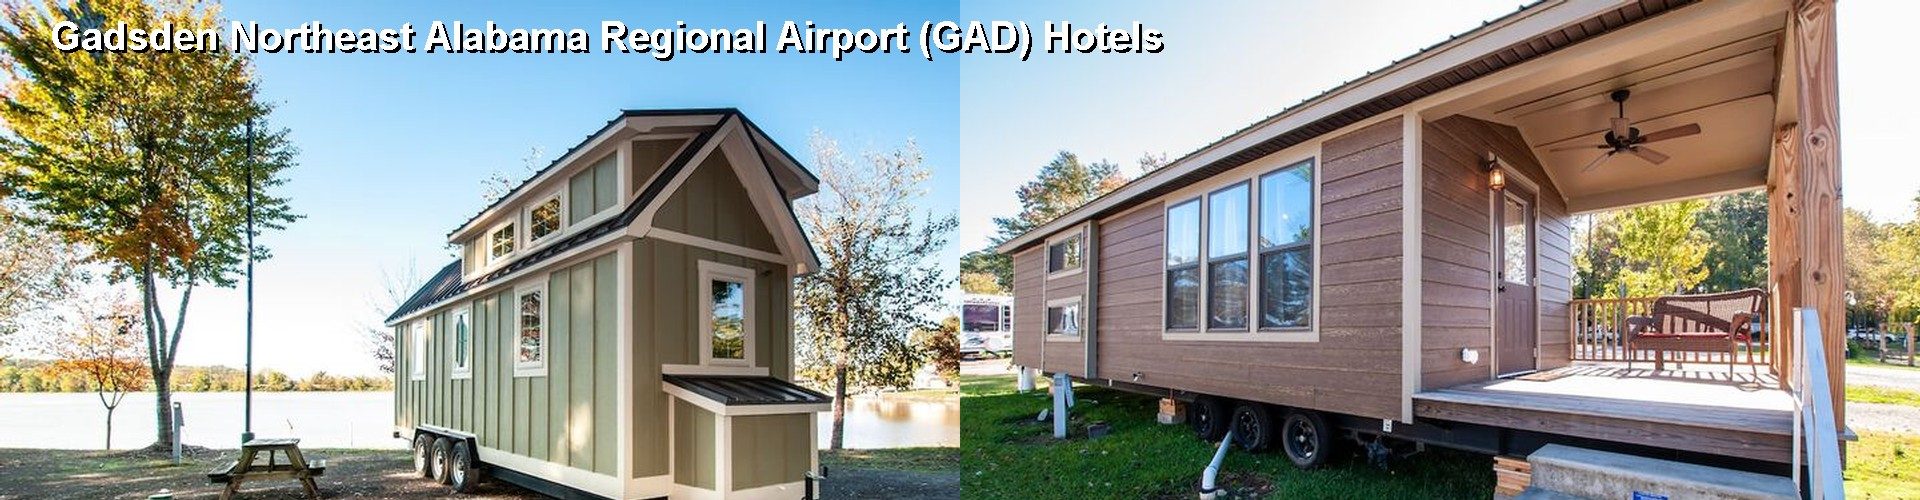 5 Best Hotels Near Gadsden Northeast Alabama Regional Airport Gad